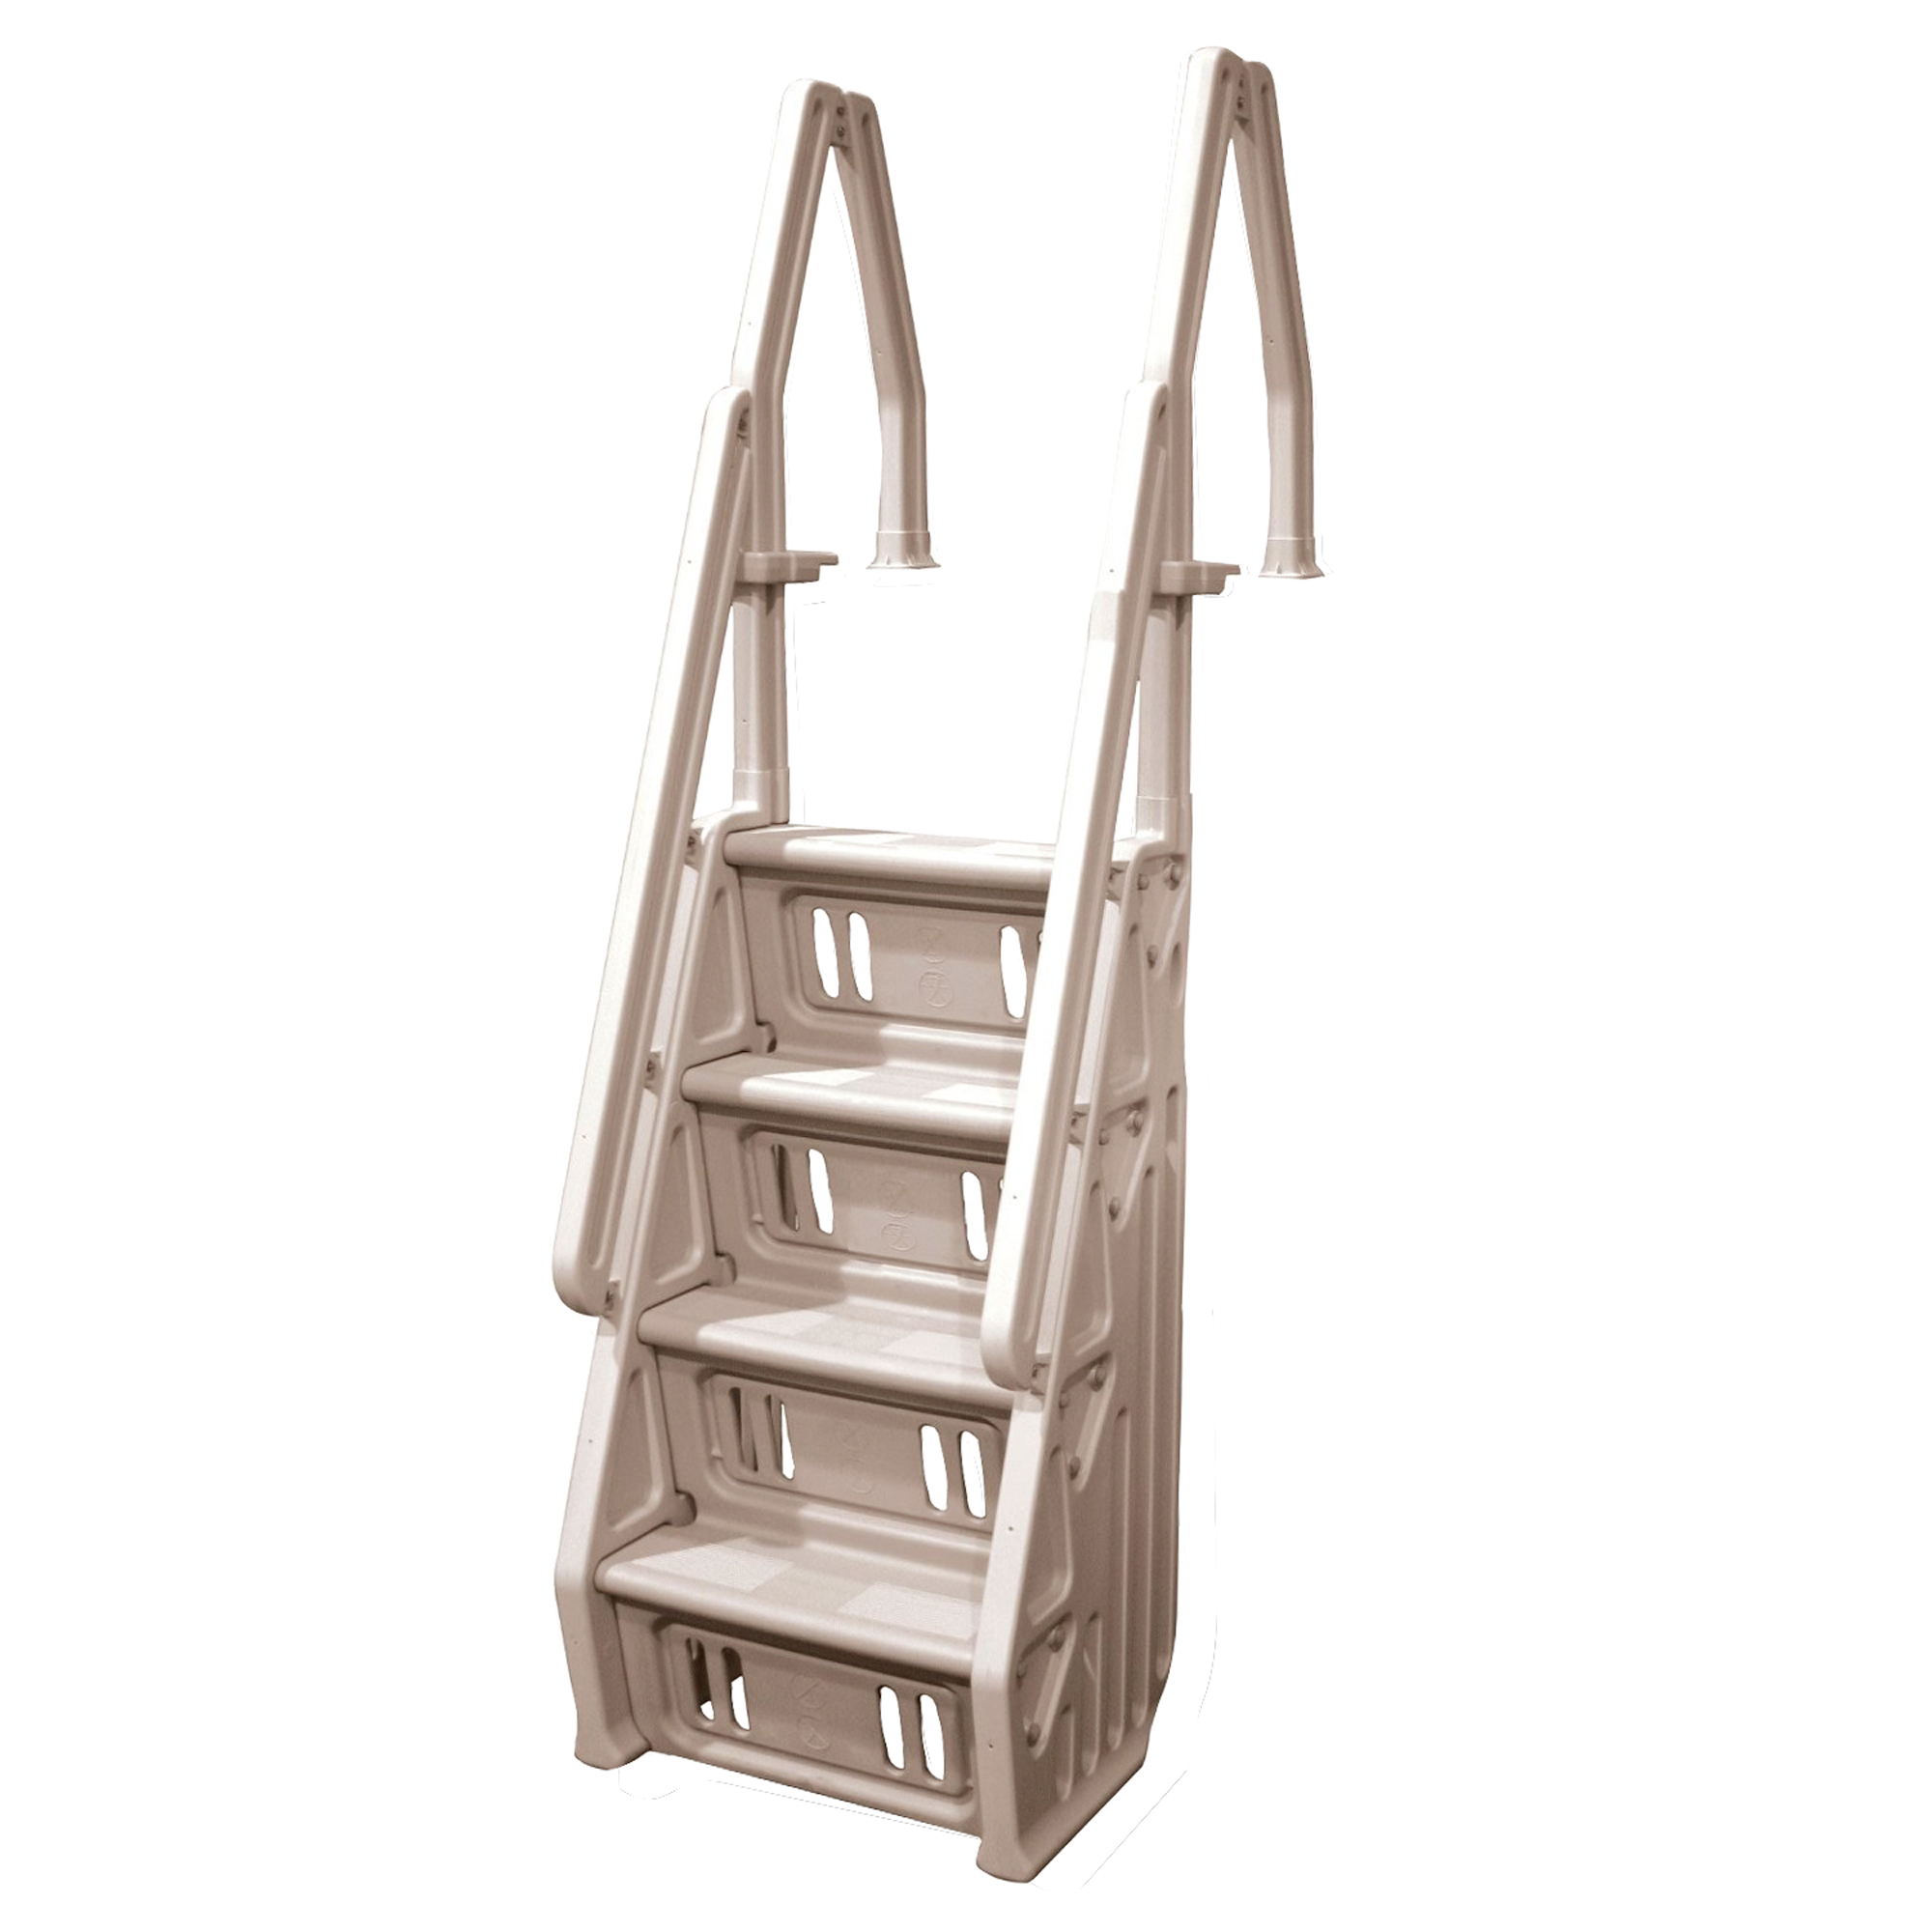 Jacuzzi Pool Ladder Pool Ladders: Browse Above Ground Pool Ladders And Steps